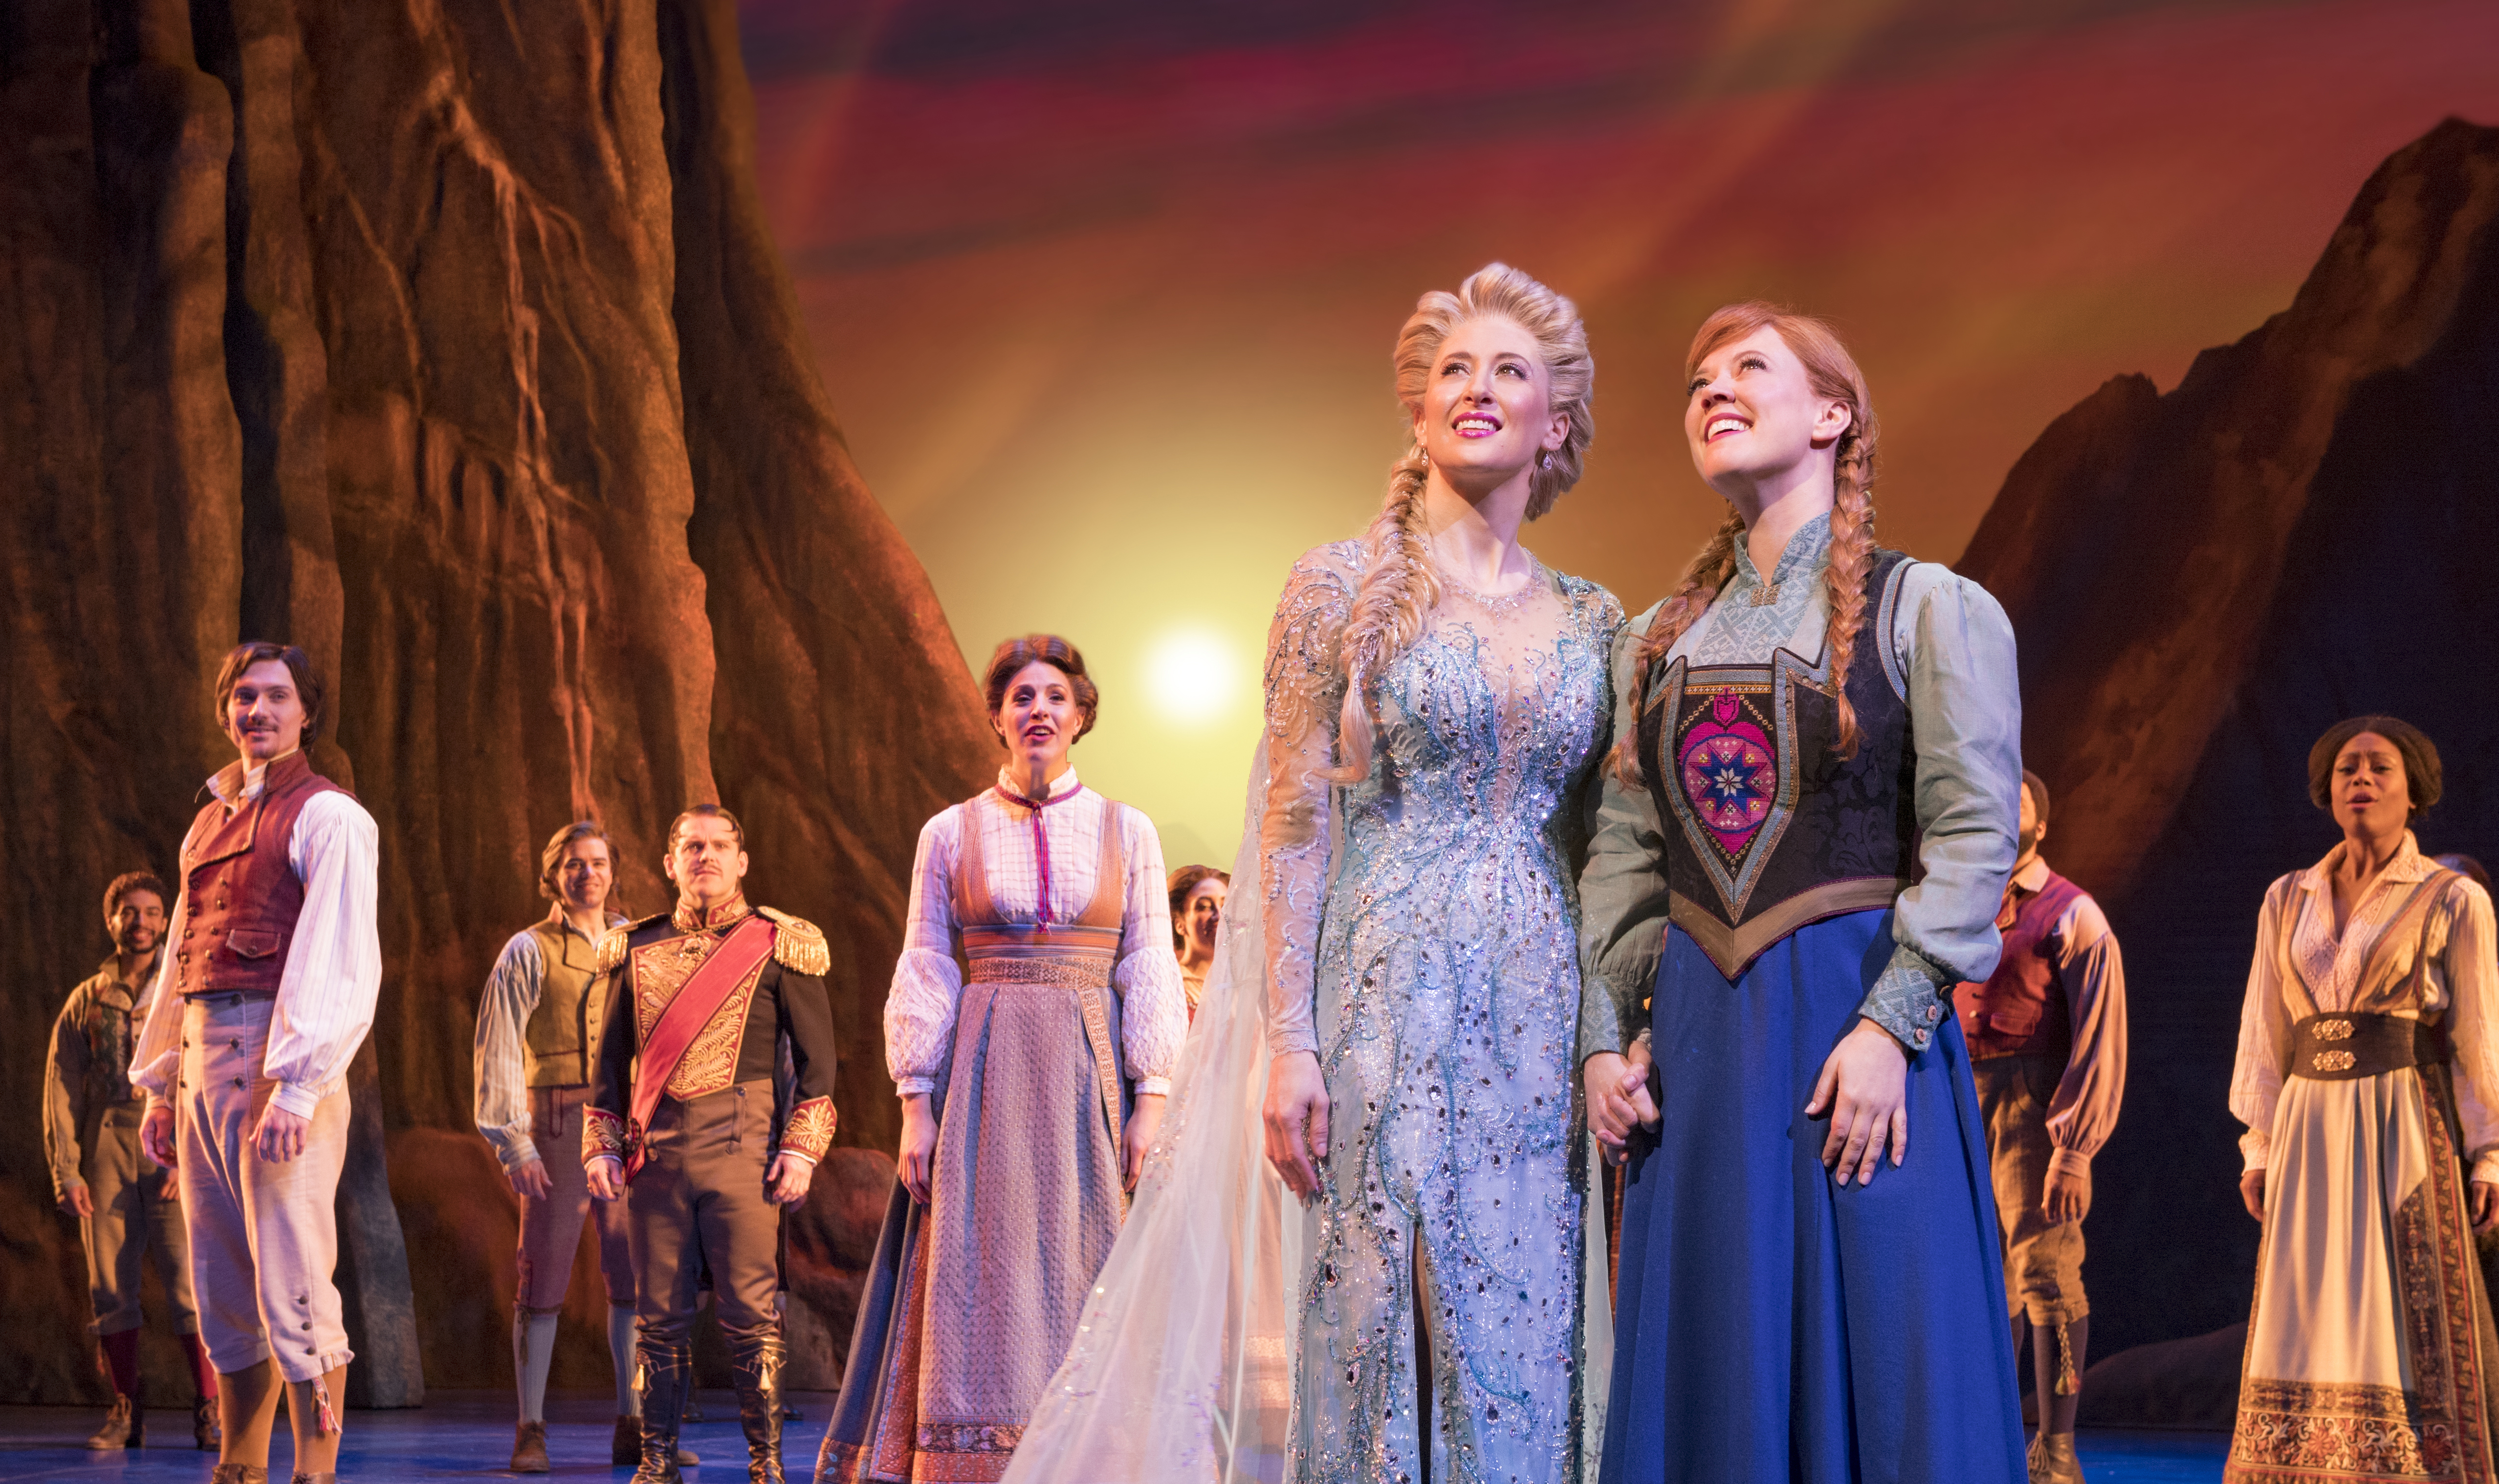 Caissie-Levy-Elsa-Patti-Murin-Anna-and-the-Company-of-FROZEN-on-Broadway.-Photo-by-Deen-van-Meer.jpg